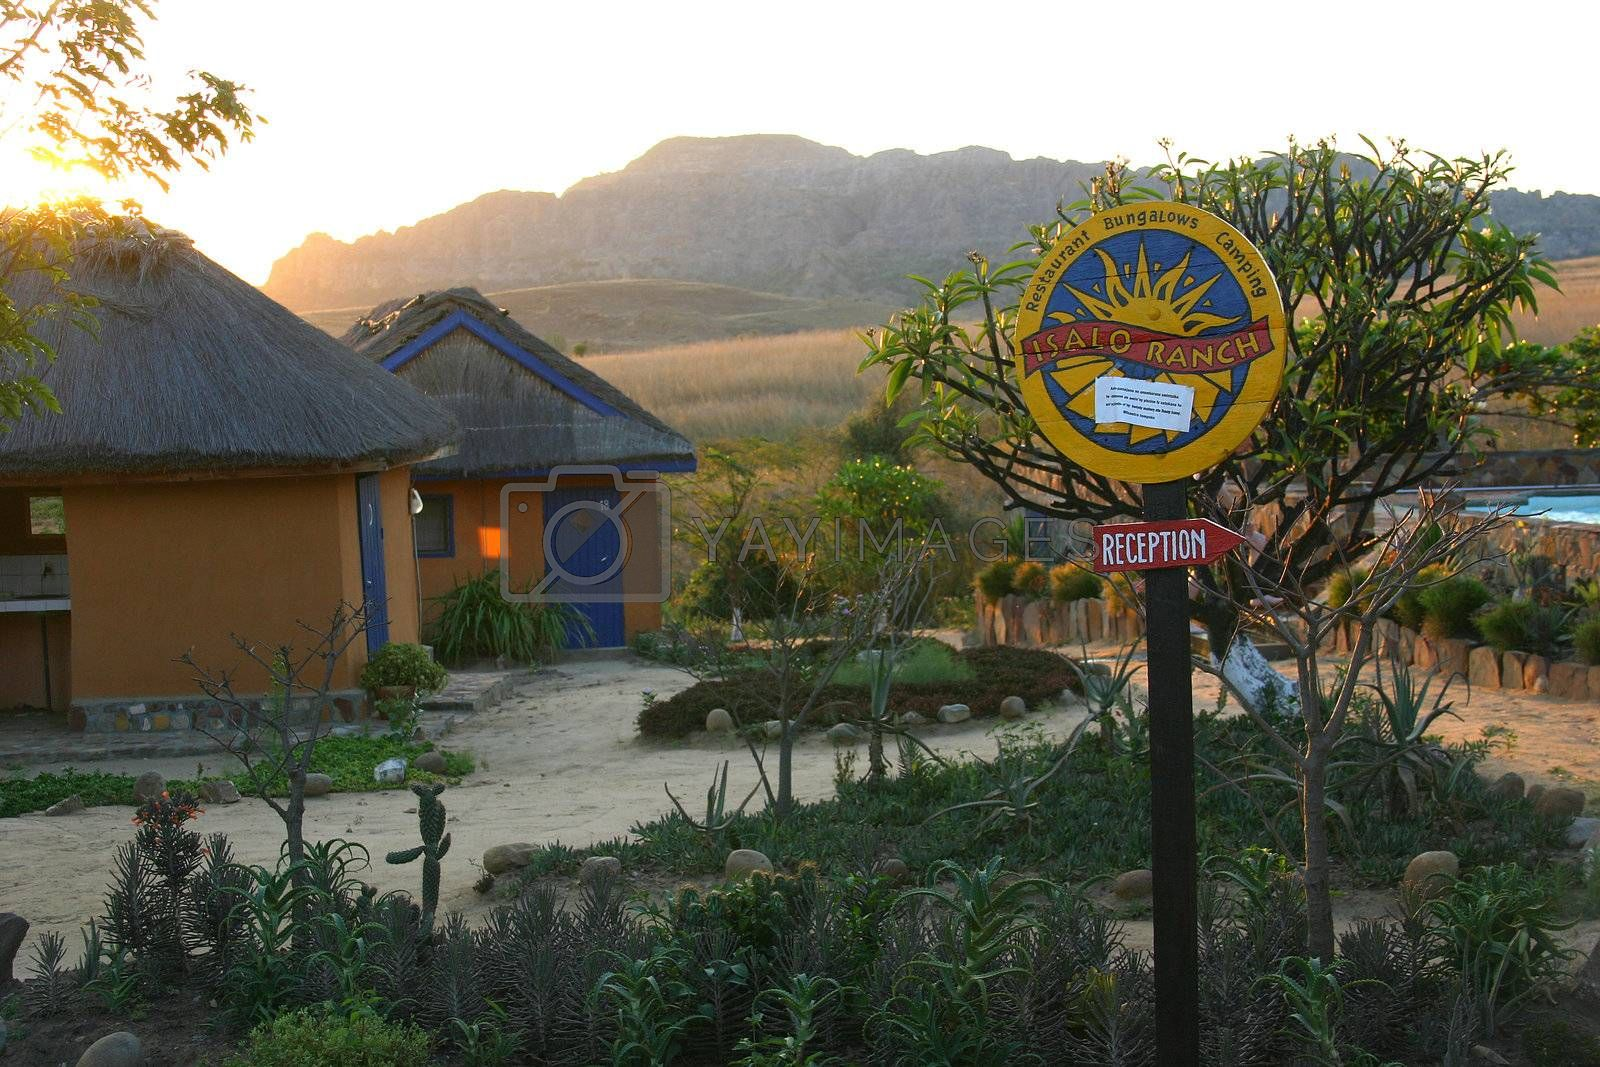 Isalo Ranch; an oasis in the middle of the heat